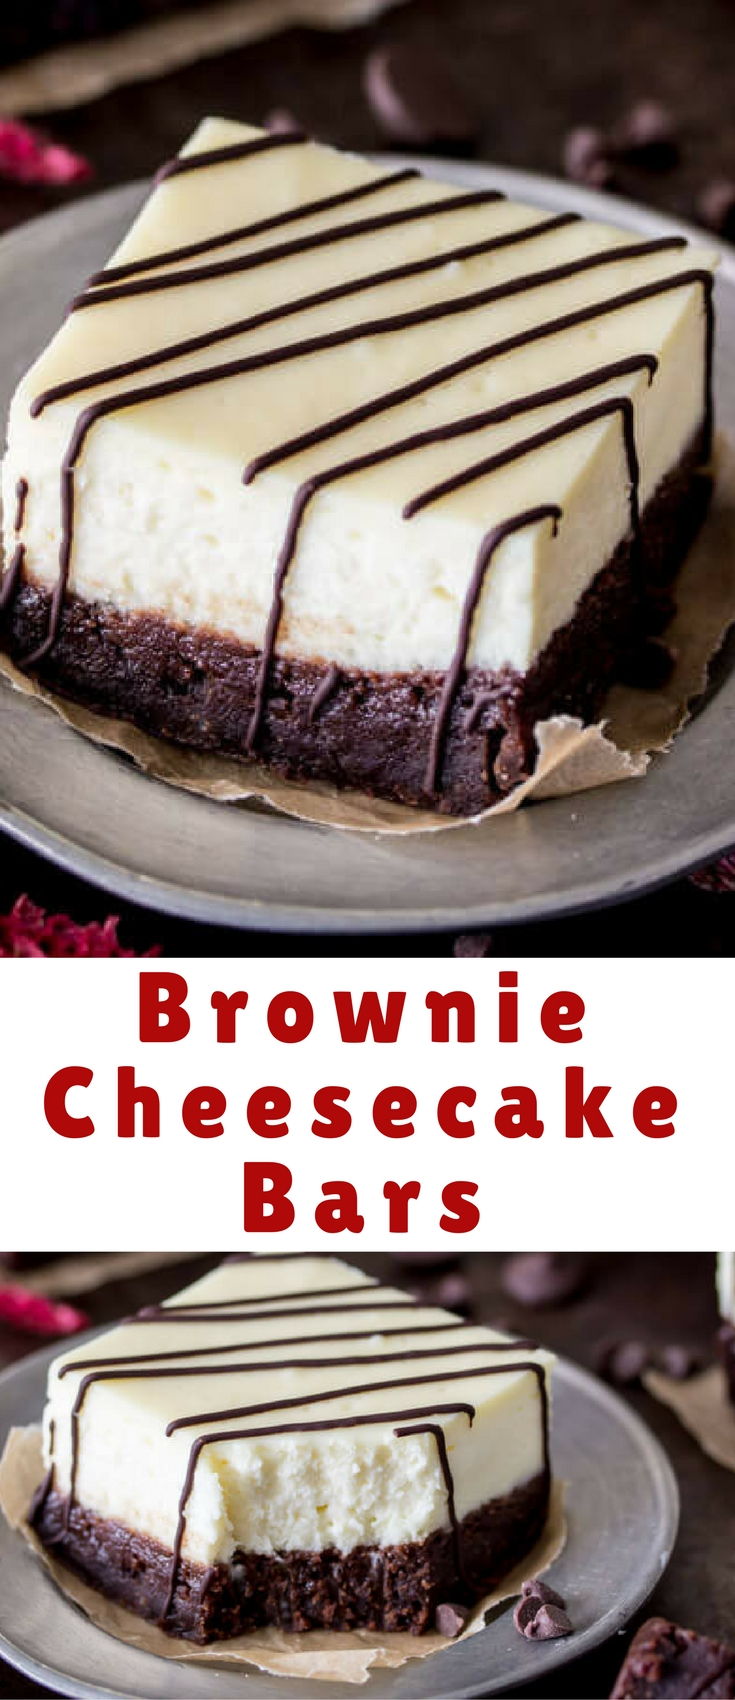 Brownie cheesecake bars with a thick layer of real cheesecake on top!